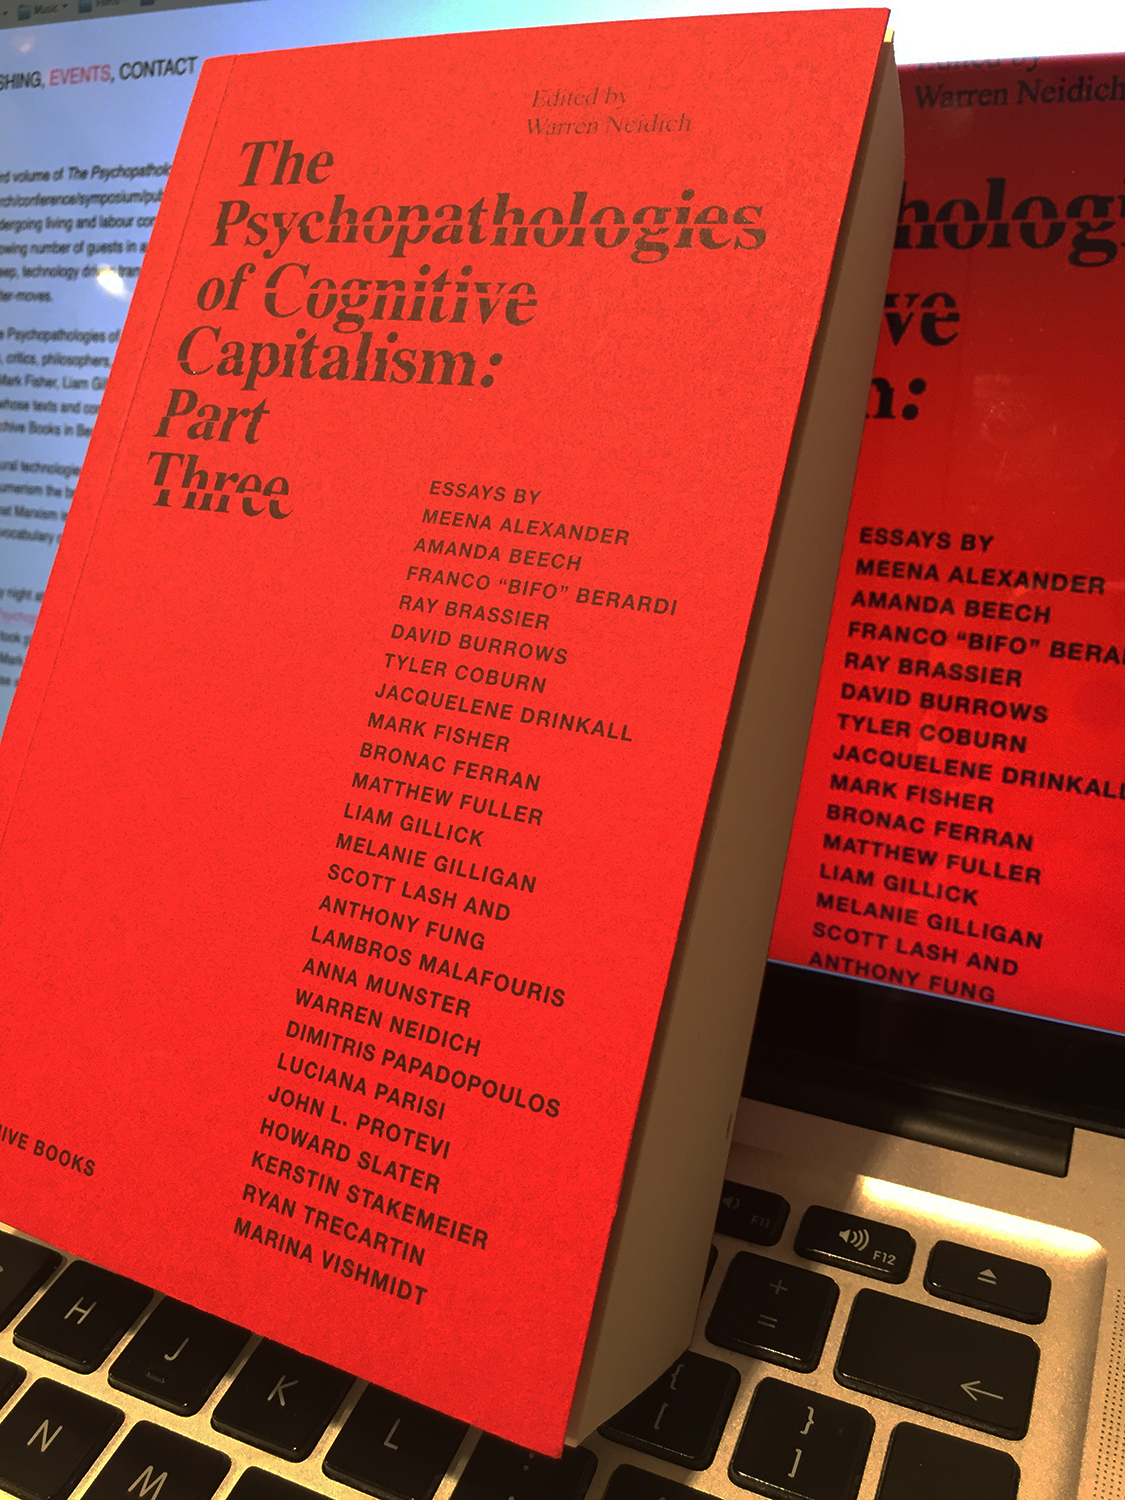 - BOOK LAUNCH The Psychopathologies of Cognitive Capitalism Part Three, with Warren Neidich